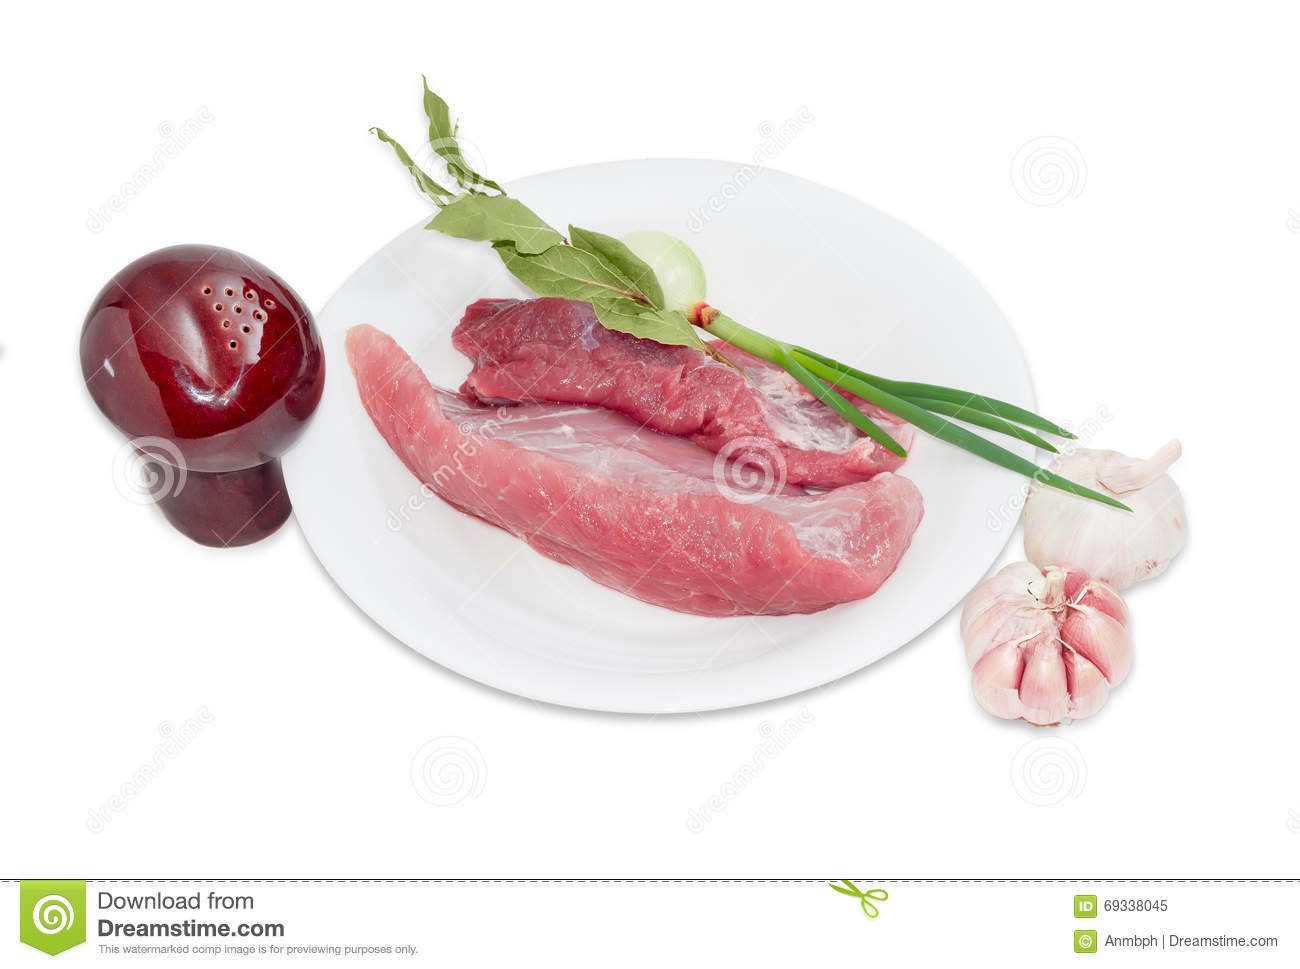 Uncooked Pork, Bay Leaves, Green Onion, Pepper Shaker And